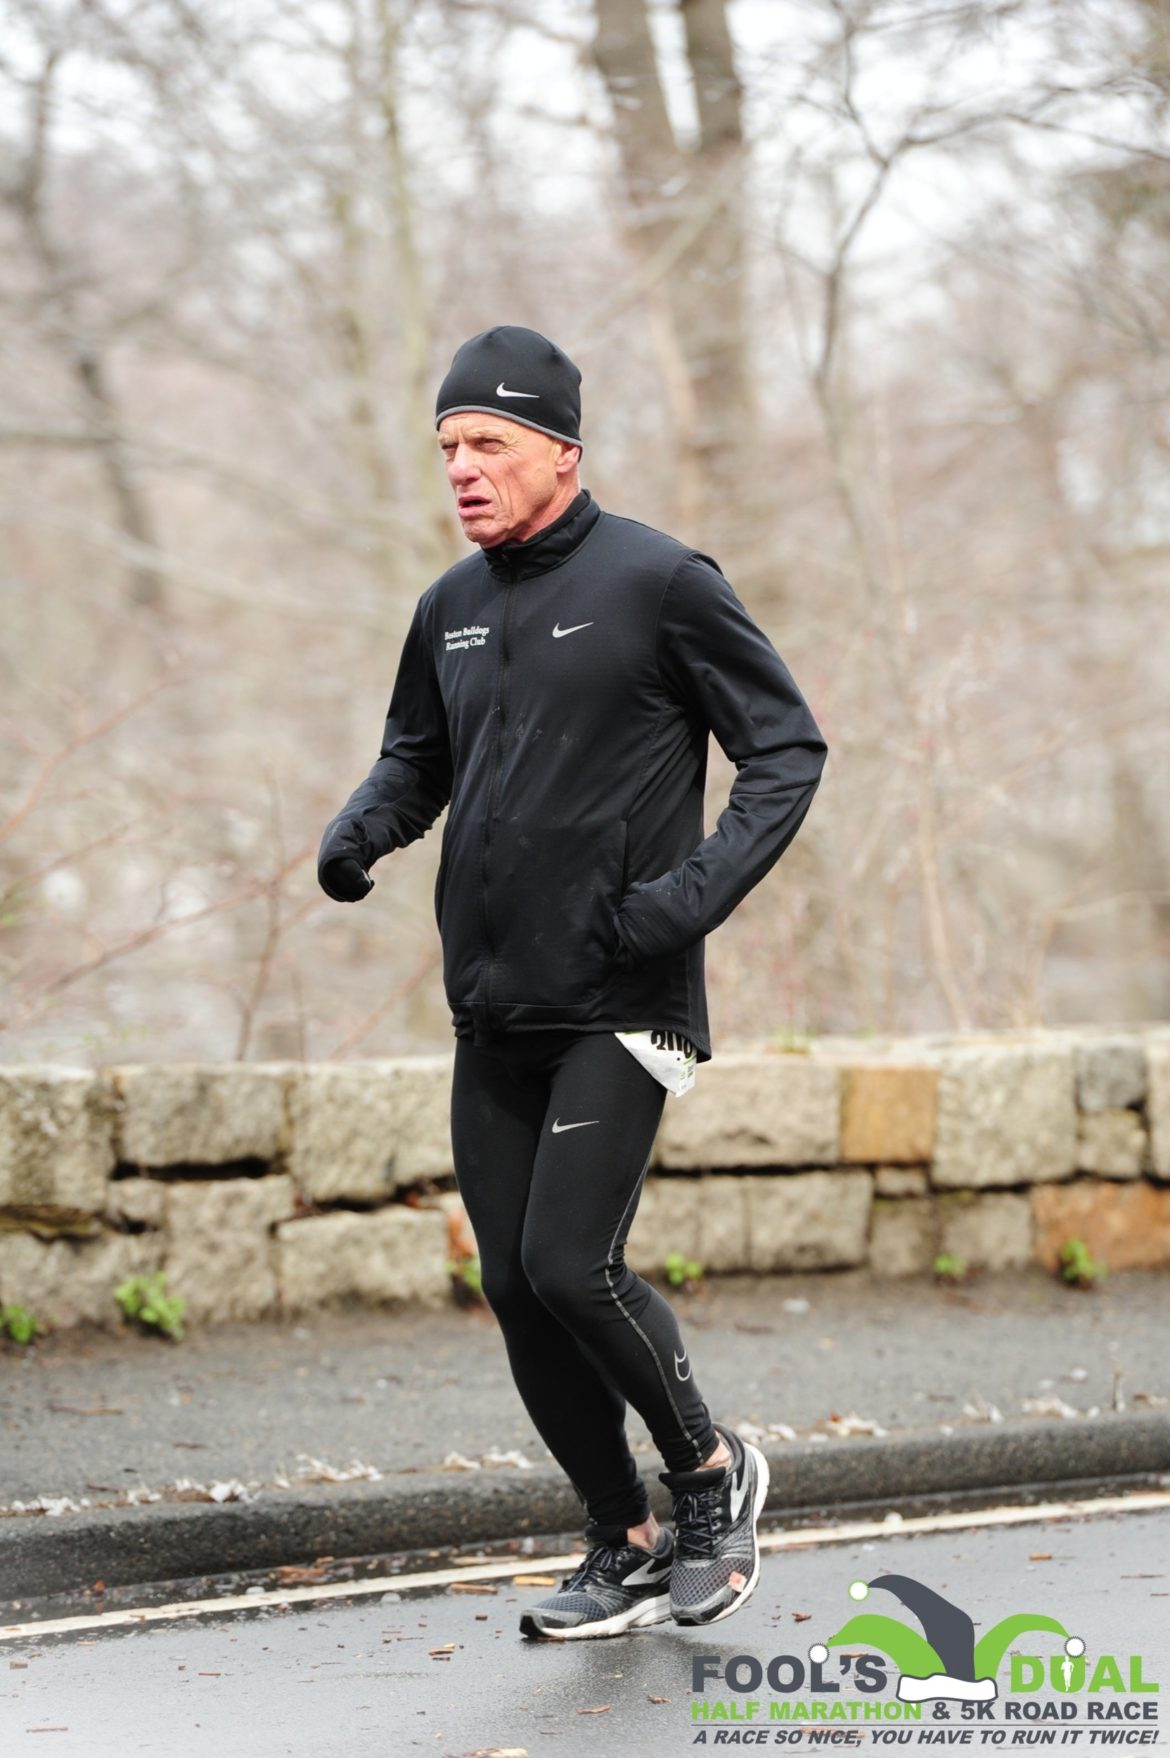 Mike Ferullo found running helped him with his addiction recovery, and started the Boston Bulldogs. He also worked at Watertown High School for 25 years.